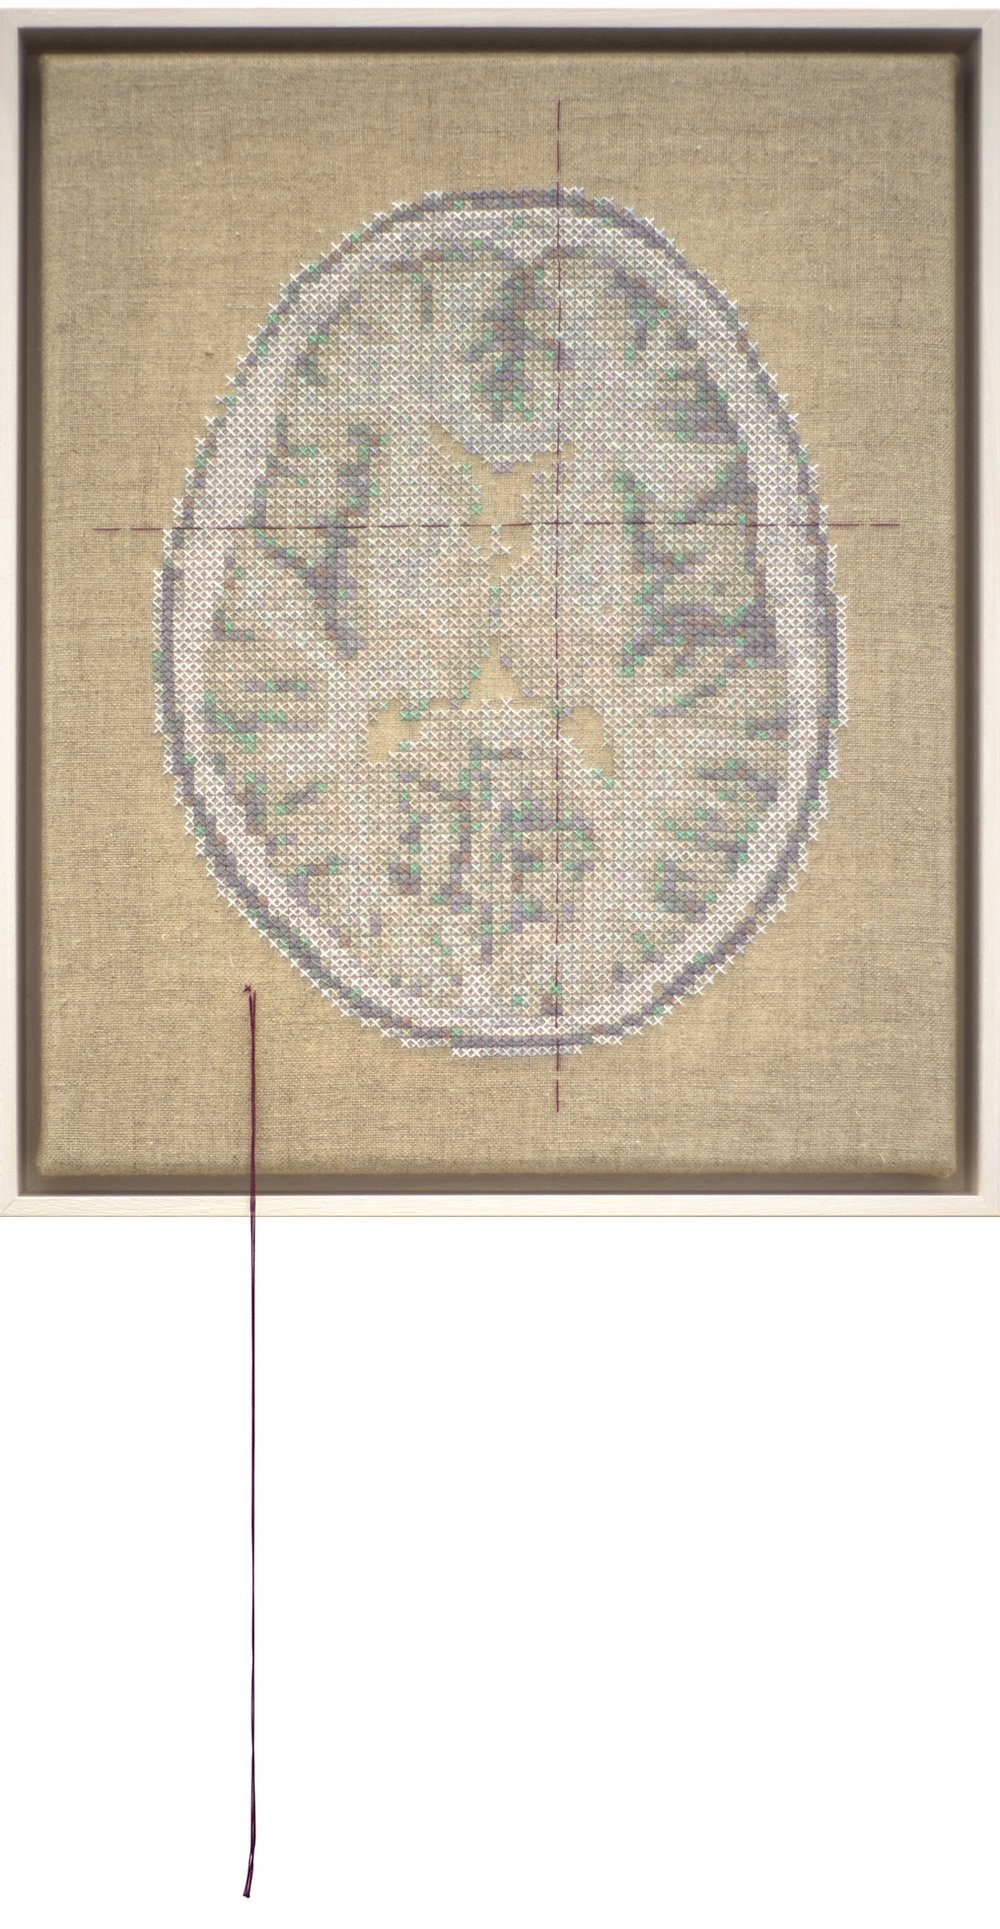 Self Portrait; Artist's Brain Stranded cotton on linen, 2017  Stitching time 49 hours 55 minutes    photo Bob Newman